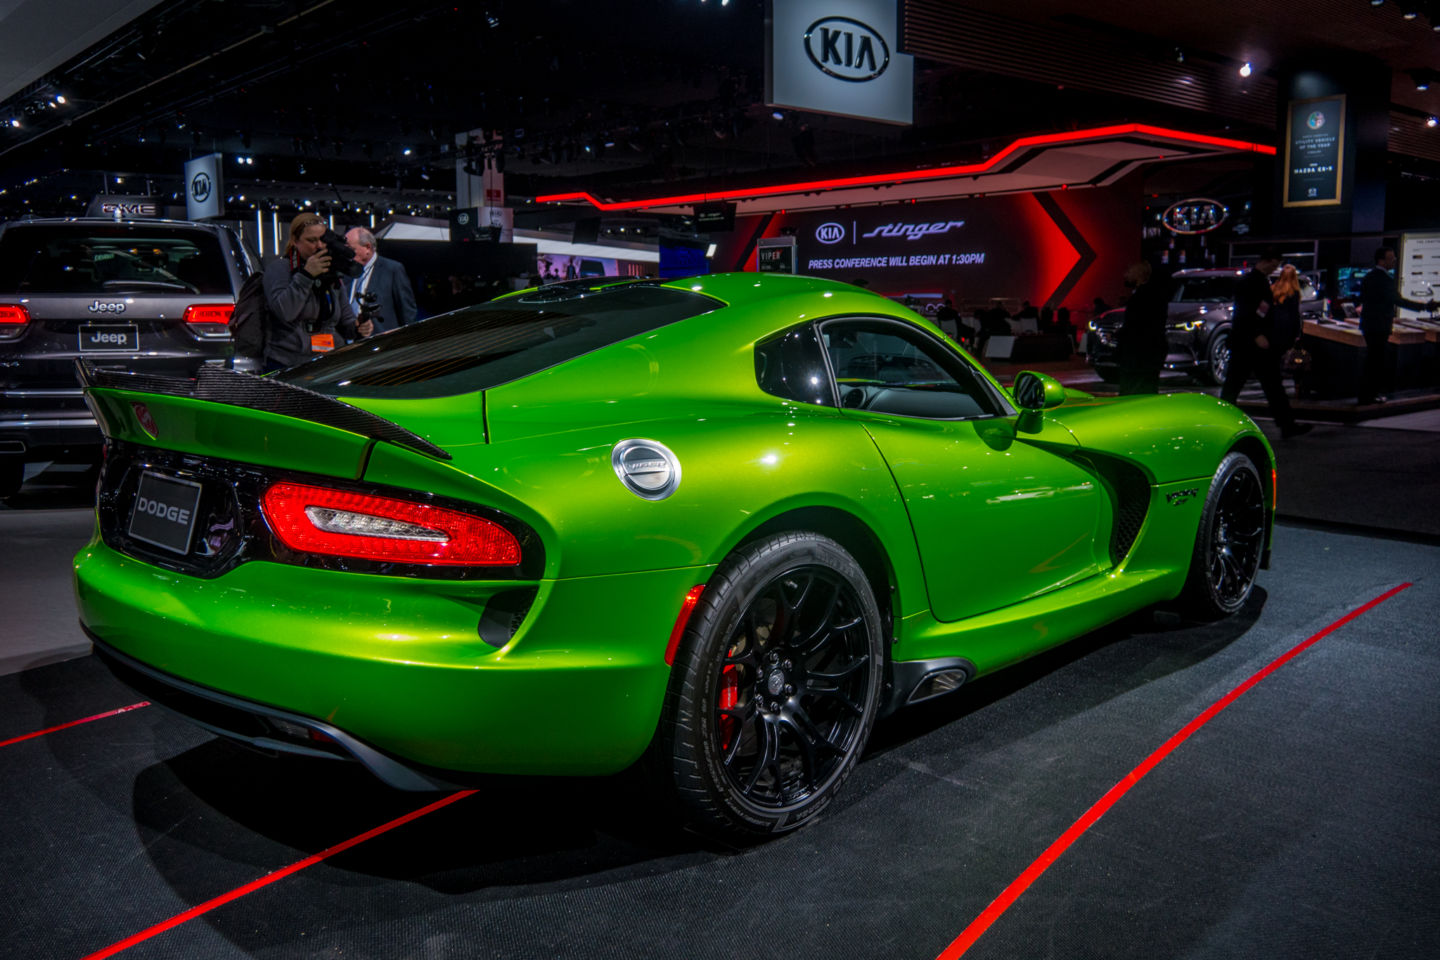 Rest-of-NAIAS-2-1440x960.jpg